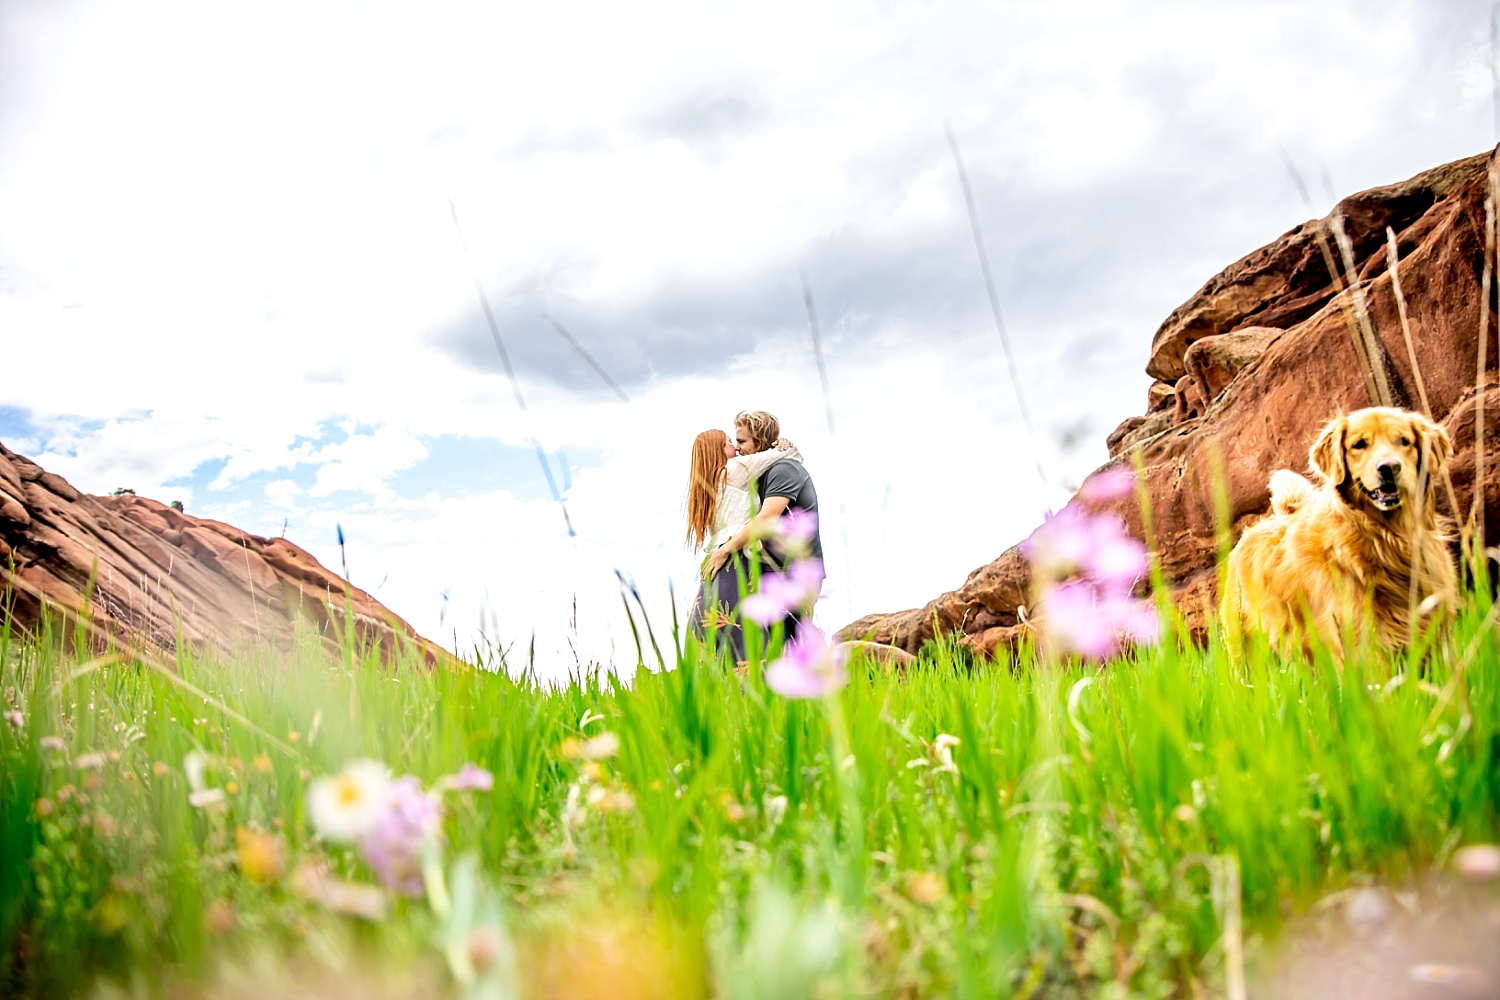 Hannah-cessna-photography-cleveland-ohio-wedding-photograper-Red-Rock-Ampitheatrer-Engagement-Denver-Colorado_0137.jpg